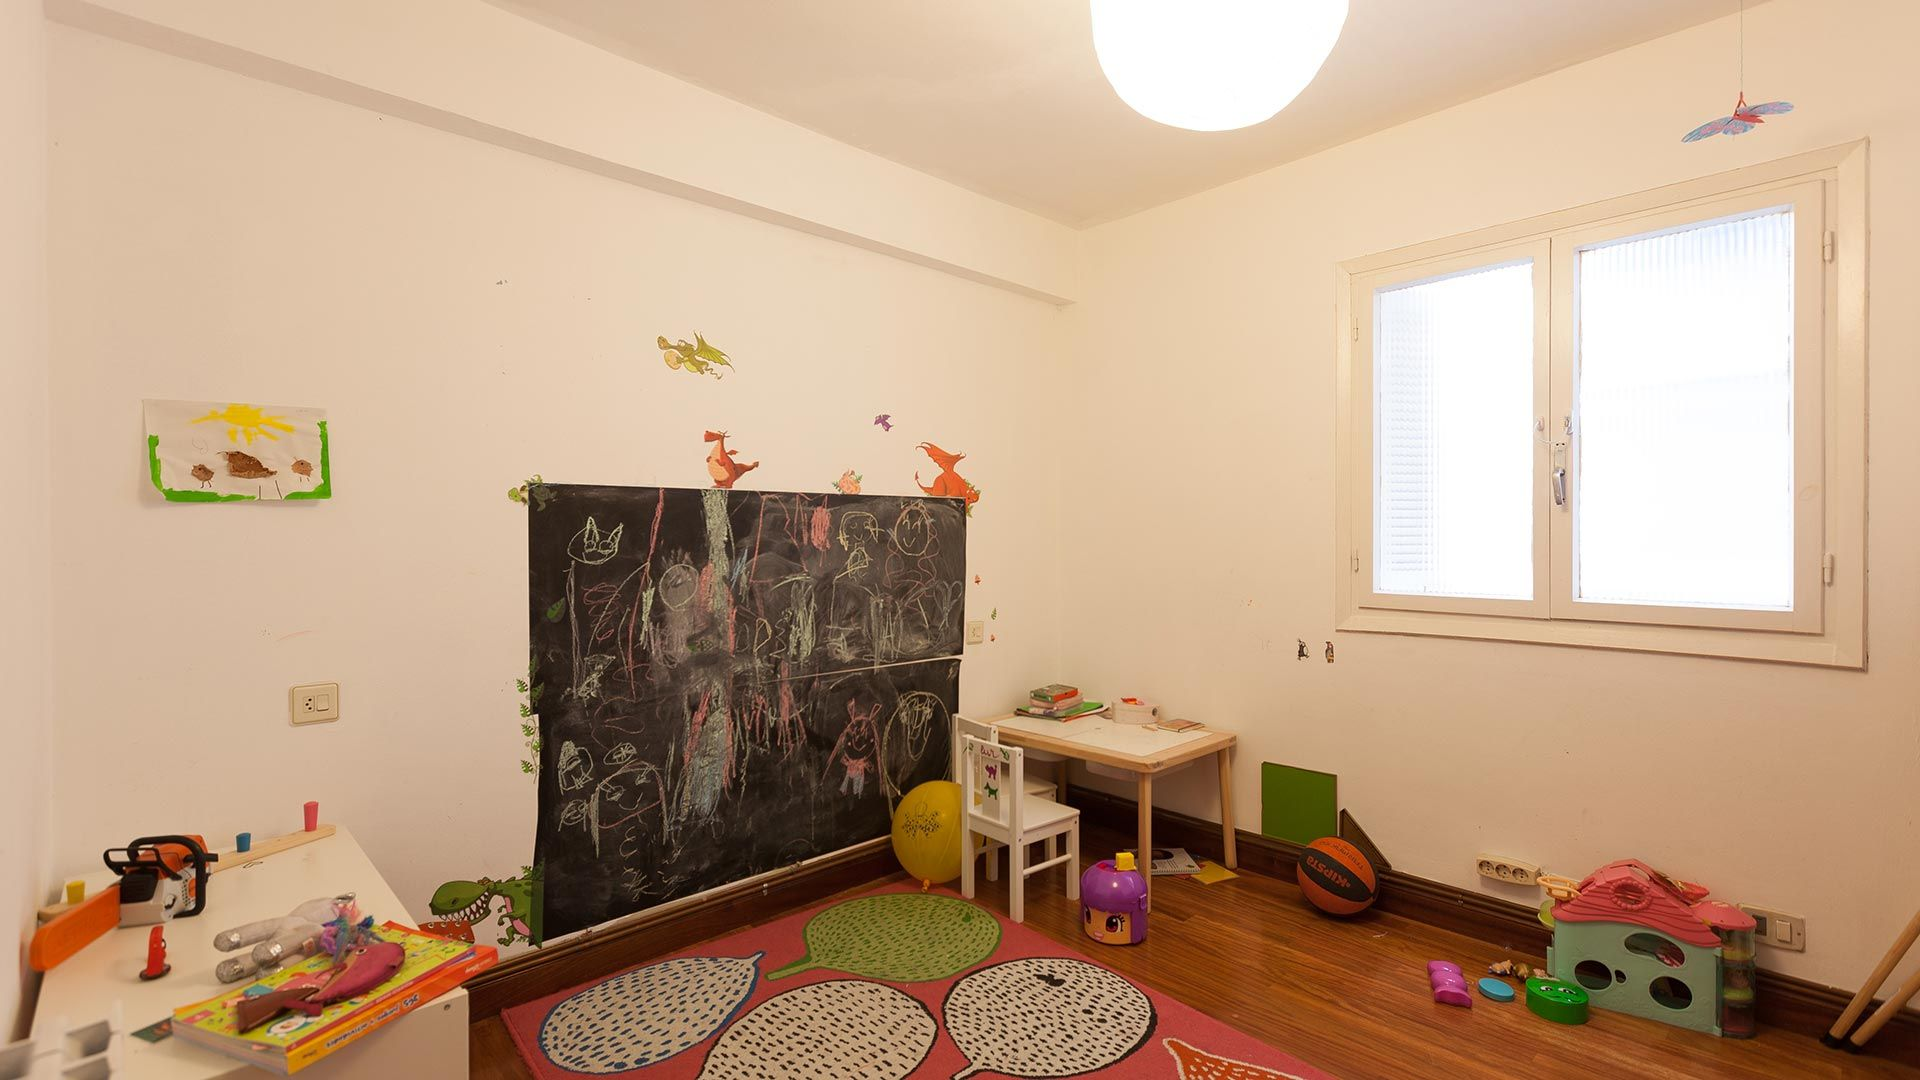 Decorar un dormitorio infantil